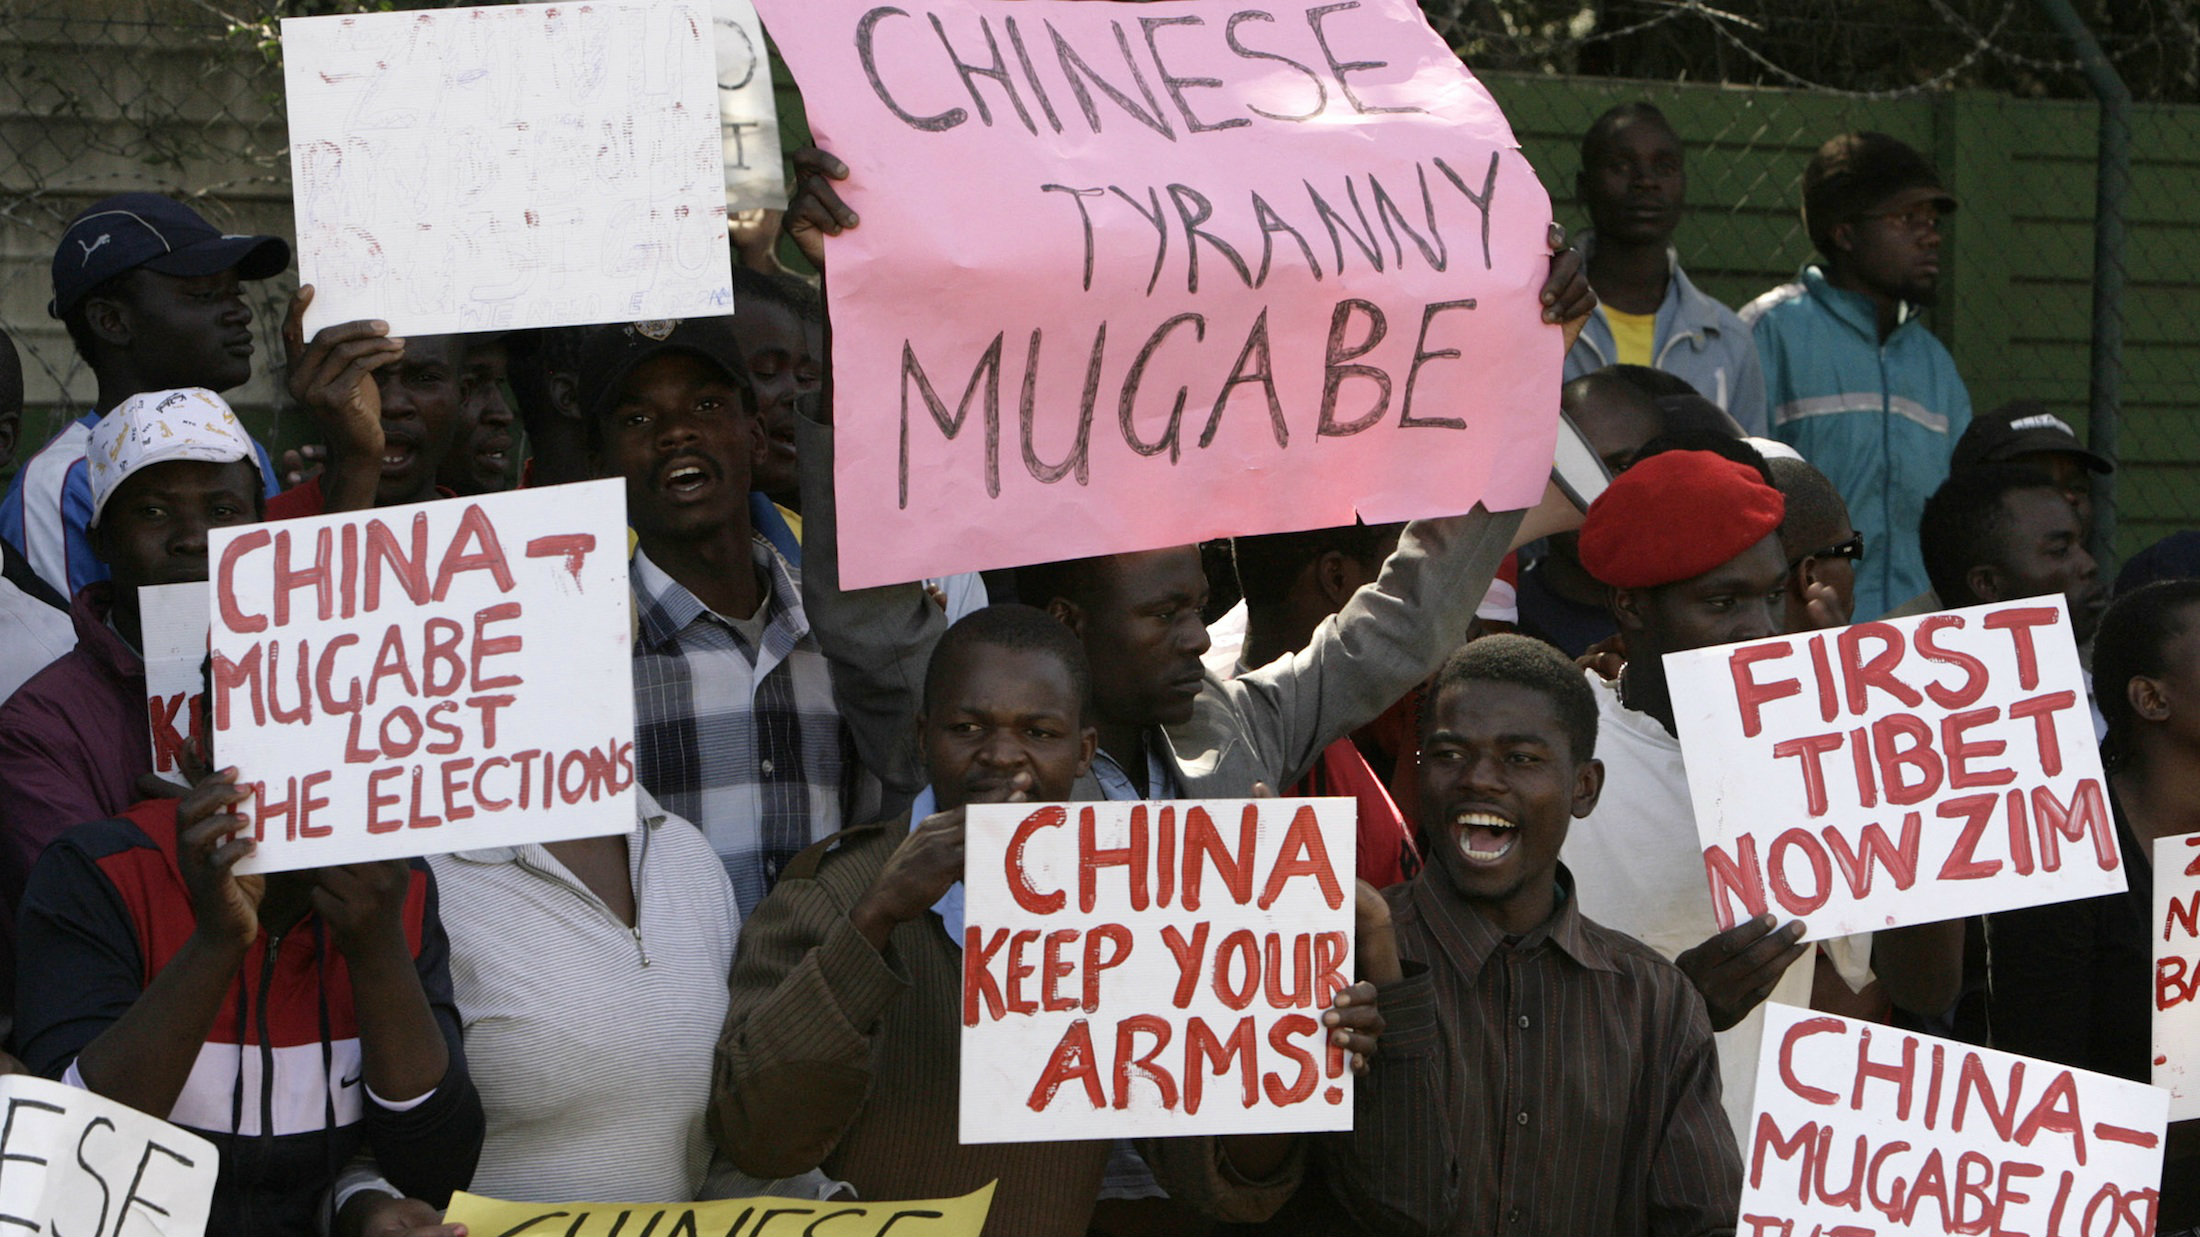 Zimbabweans protesting outside the Chinese Embassy in South Africa in 2008 over Beijing's veto of UN resolution to sanction Mugabe